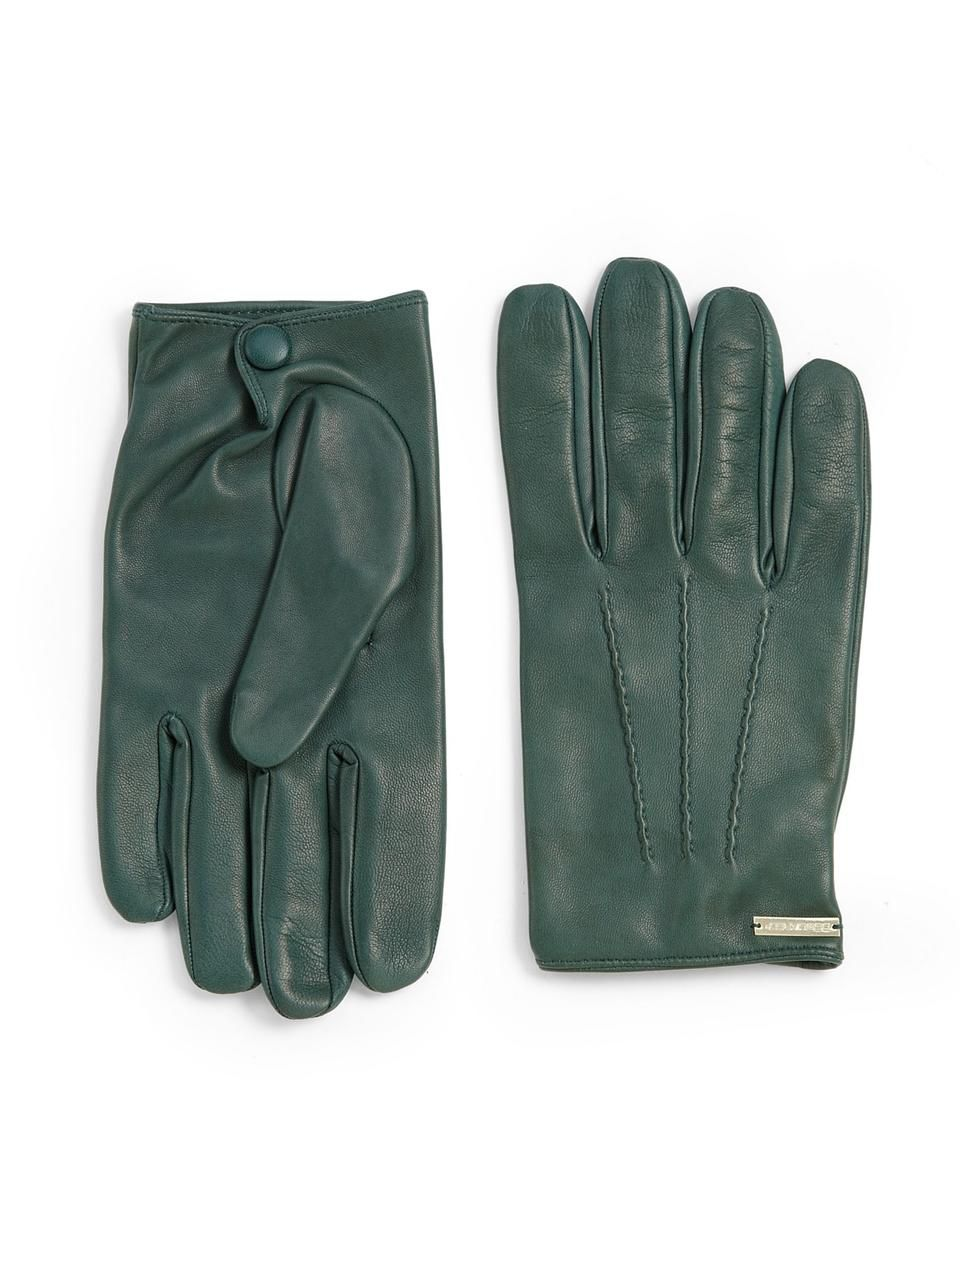 Very mens gloves - Nappa Gloves Mens Green Leather Gloves Love Wantering